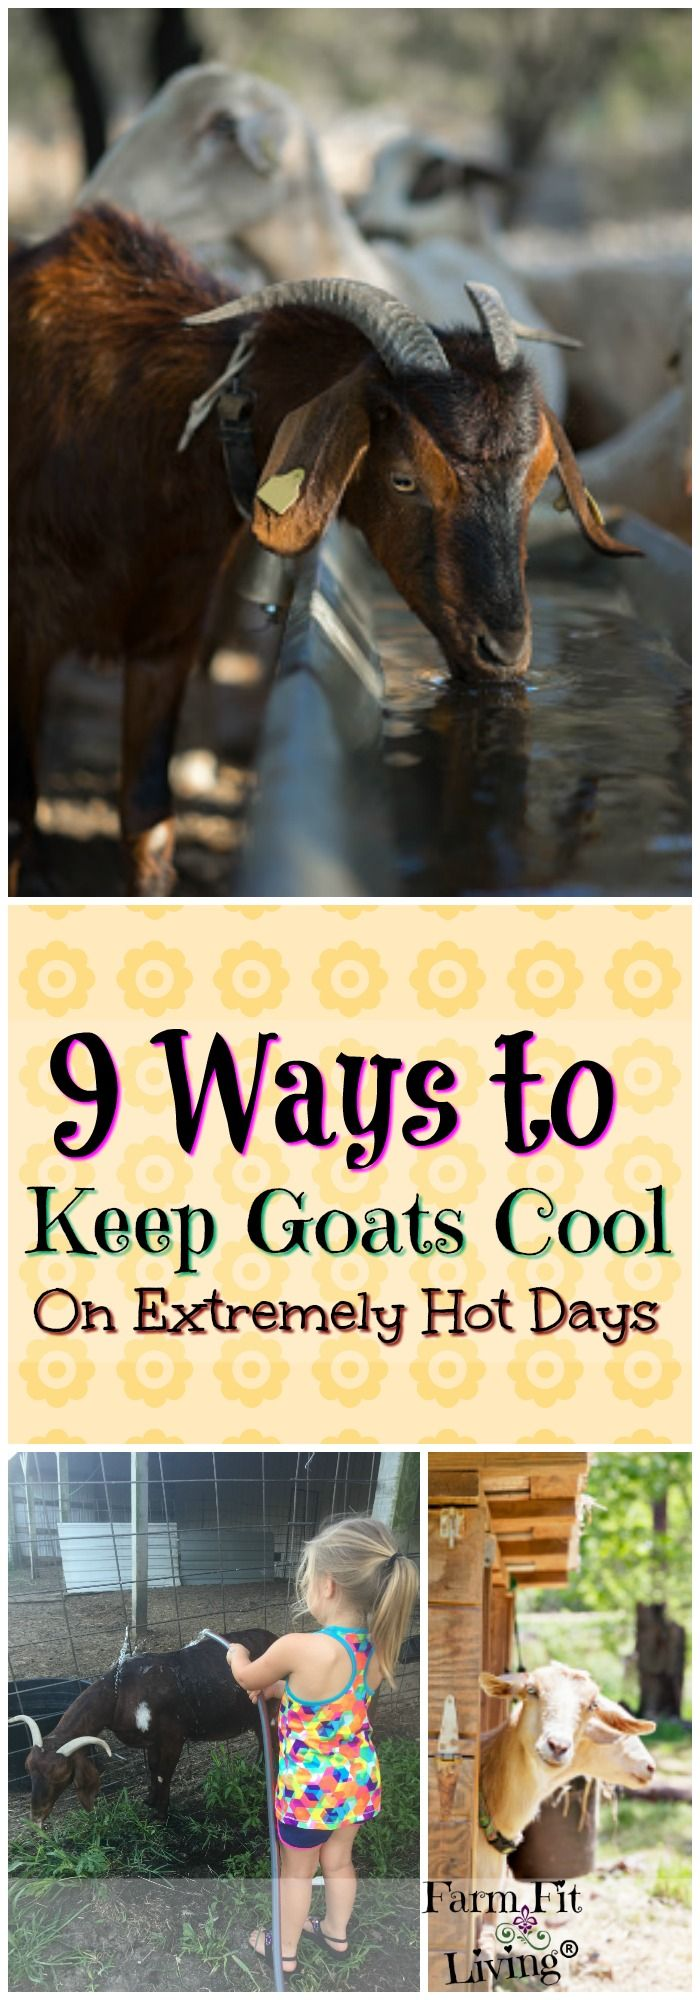 Are you looking for ways to keep goats cool during the scorching heat? Here are 9 great ways to cool your goats during the summer. via @www.pinterest.com/farmfitliving